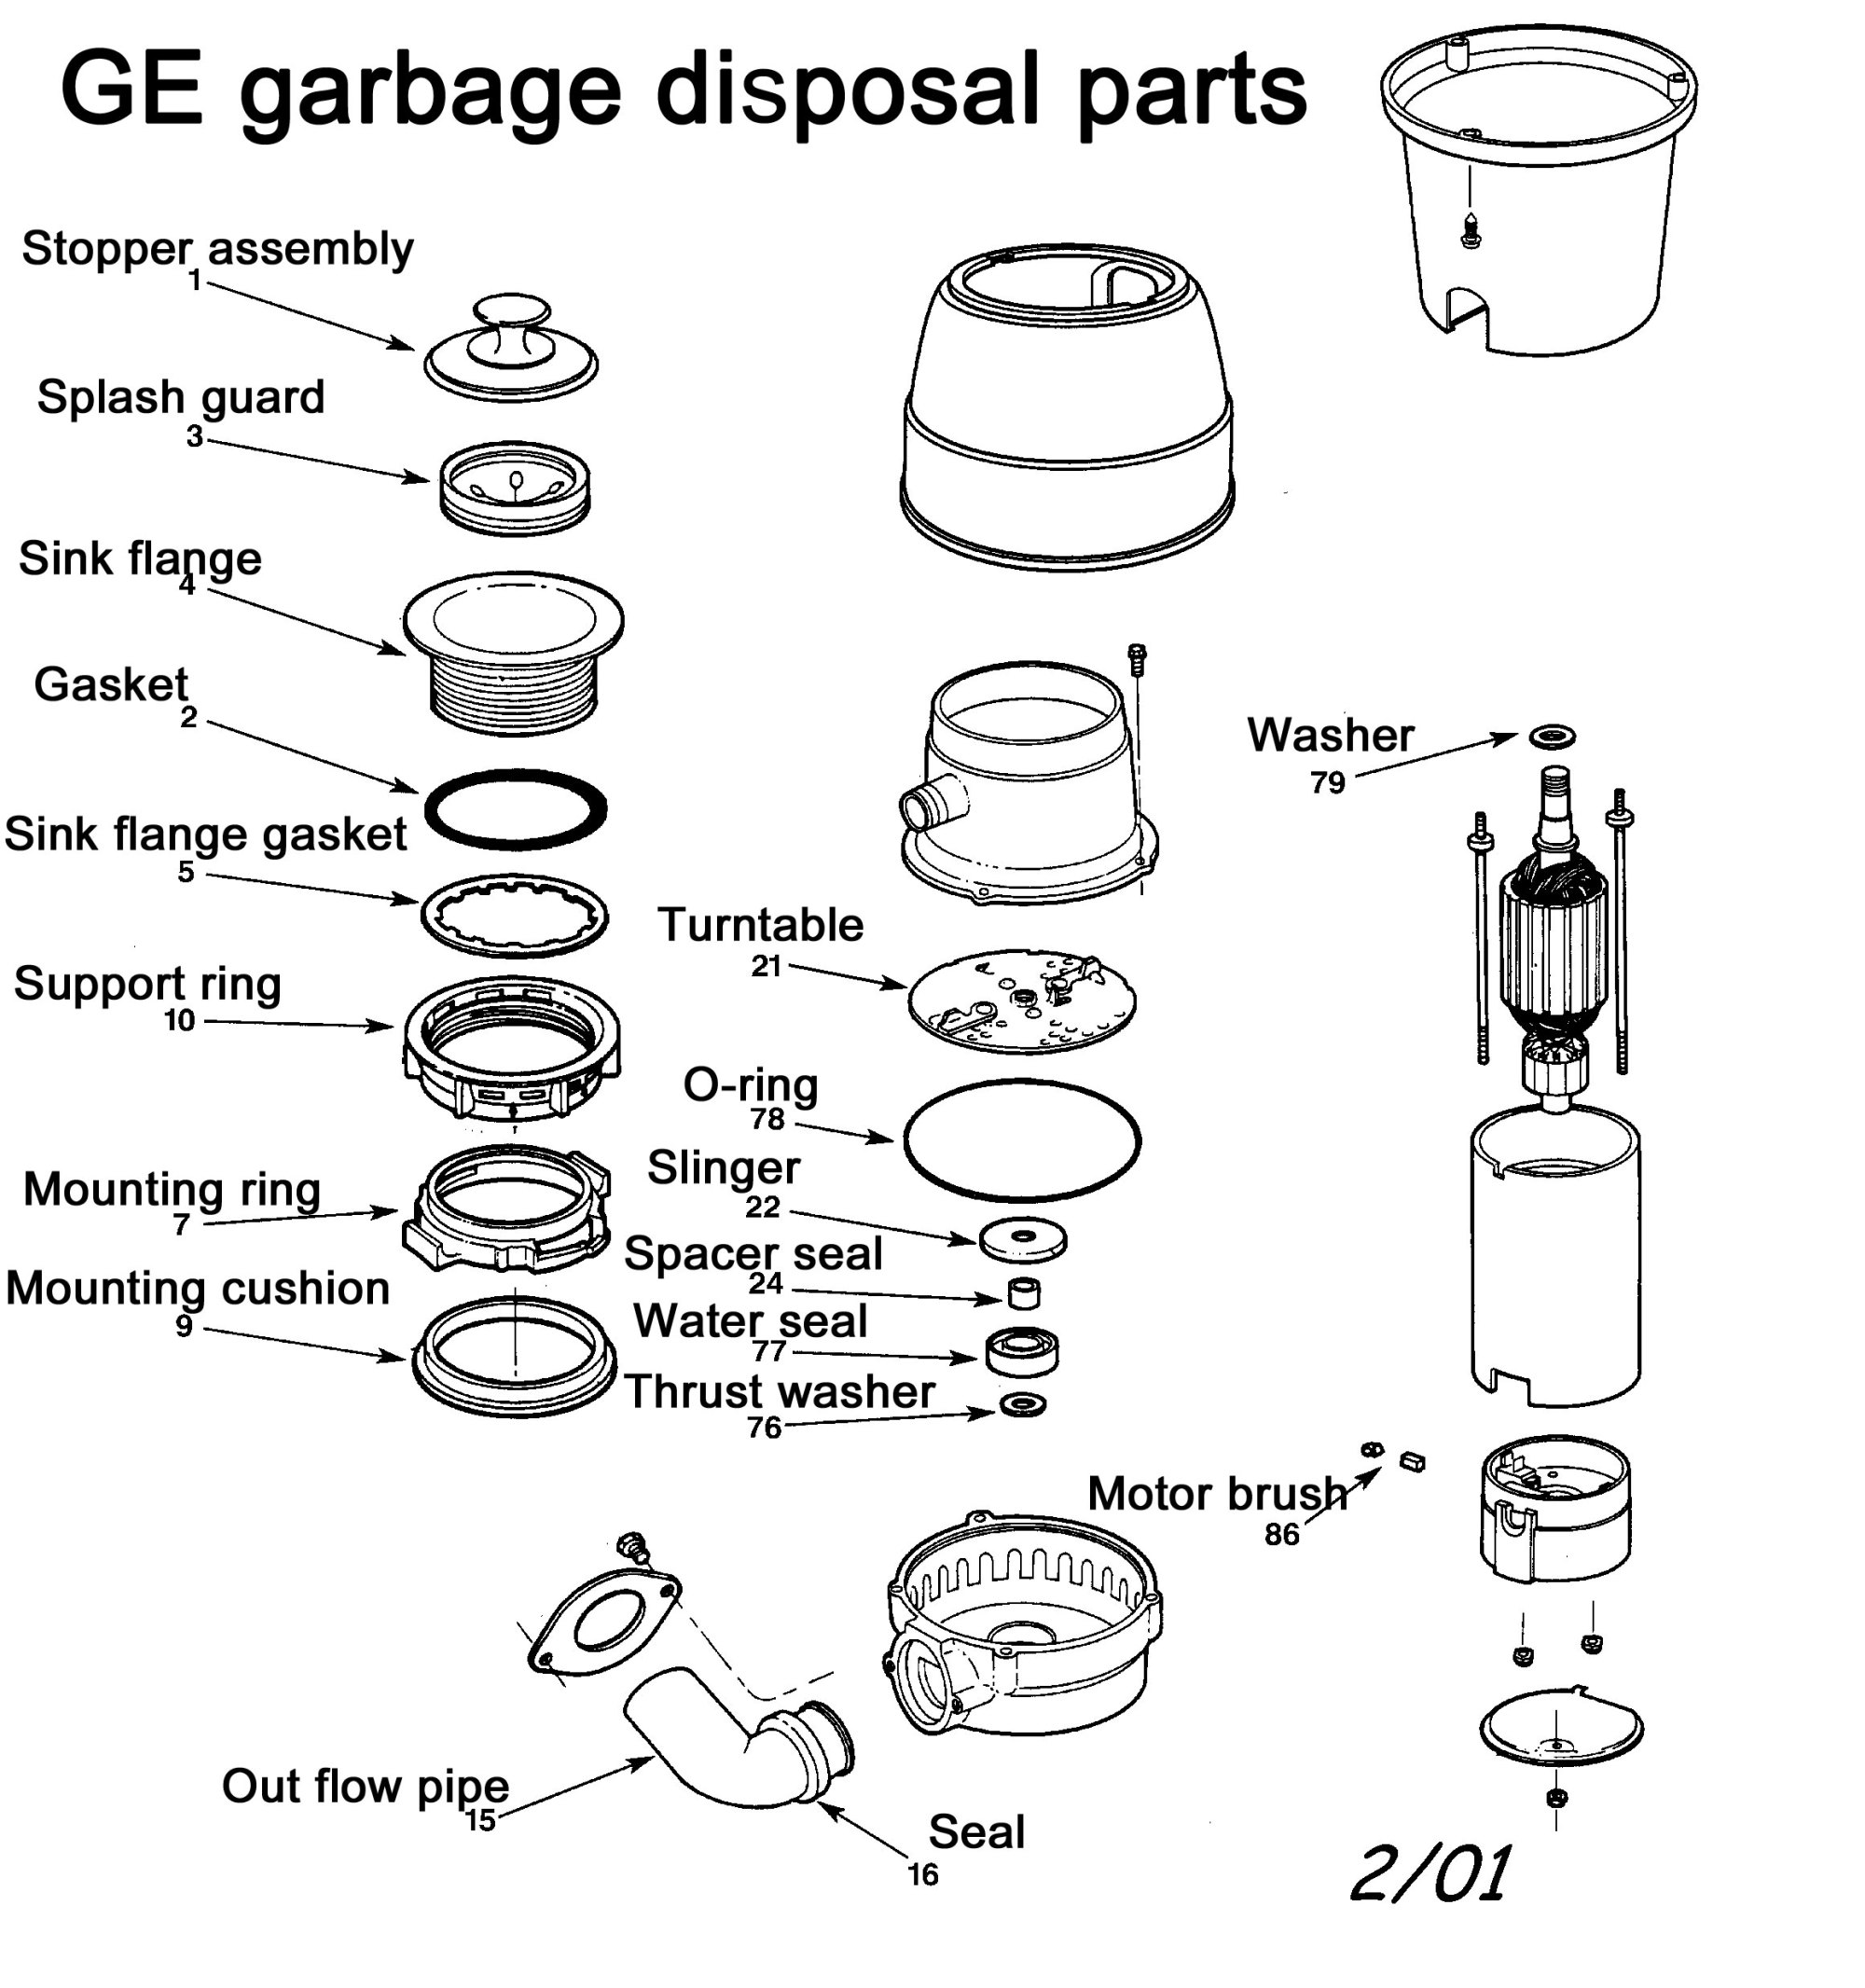 hight resolution of exploded image of ge parts